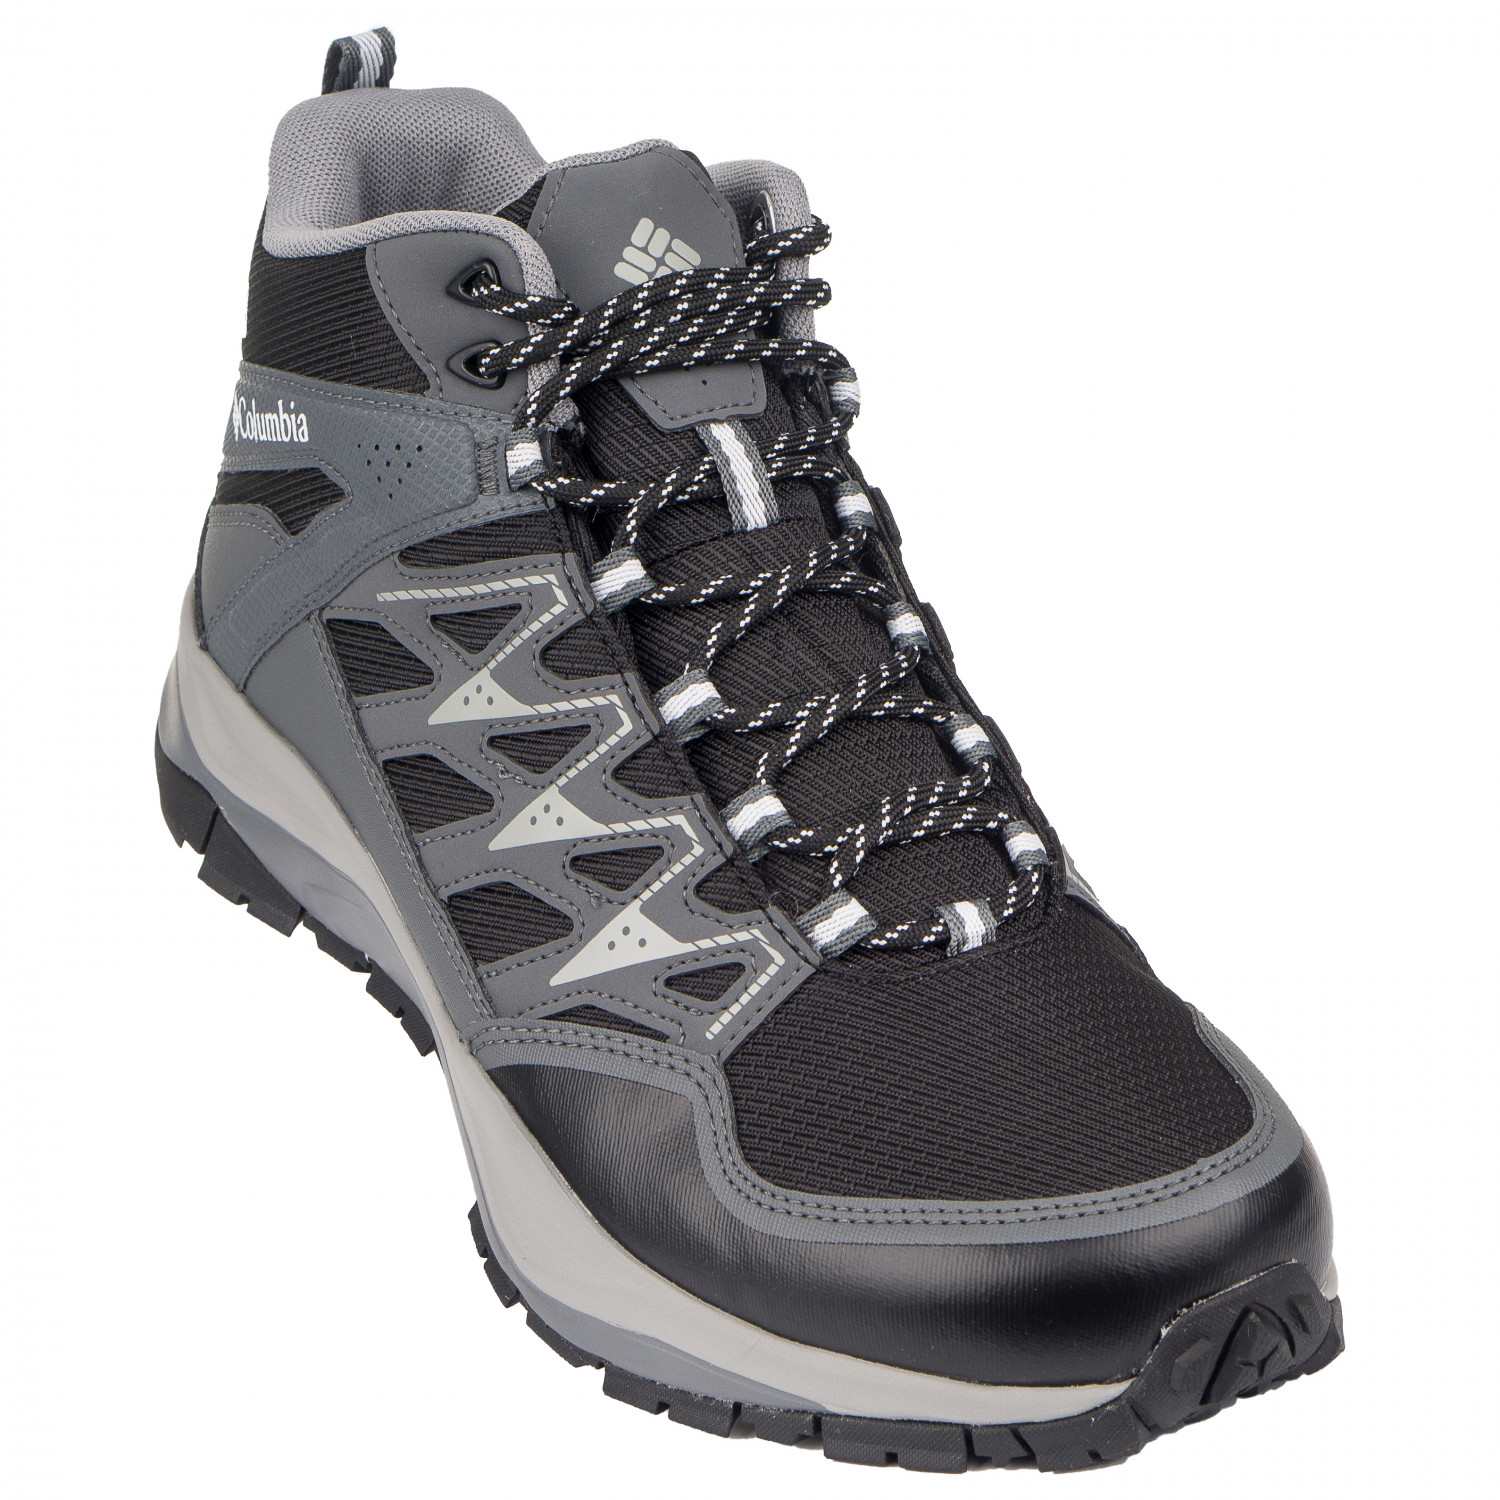 3702bca29ad Columbia - Wayfinder Mid Outdry - Walking boots - Black / White | 9,5 (US)